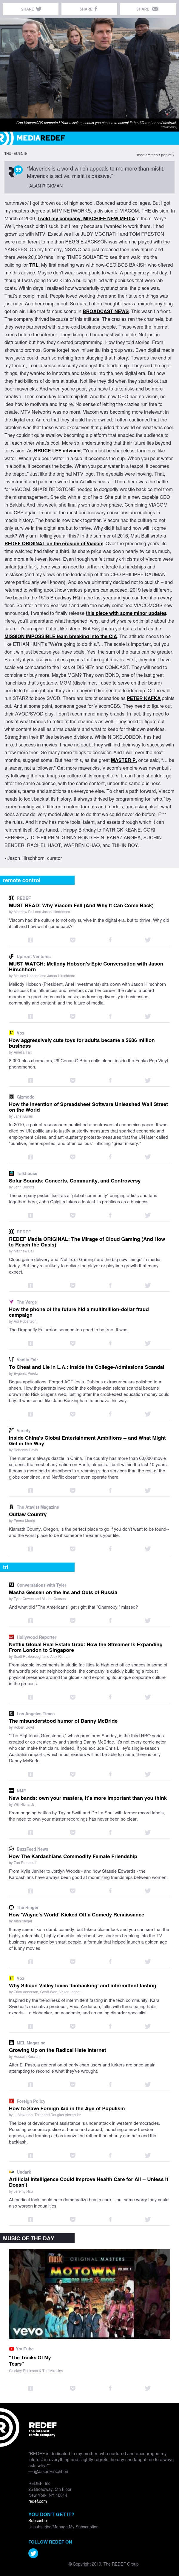 jason hirschhorn's @MediaREDEF: 08/15/2019 - Can Viacom Come Back?, Mellody Hobson is Epic, Toys for Adults, Spreadsheets, Cloud Gaming, Cheat and Lie in LA...